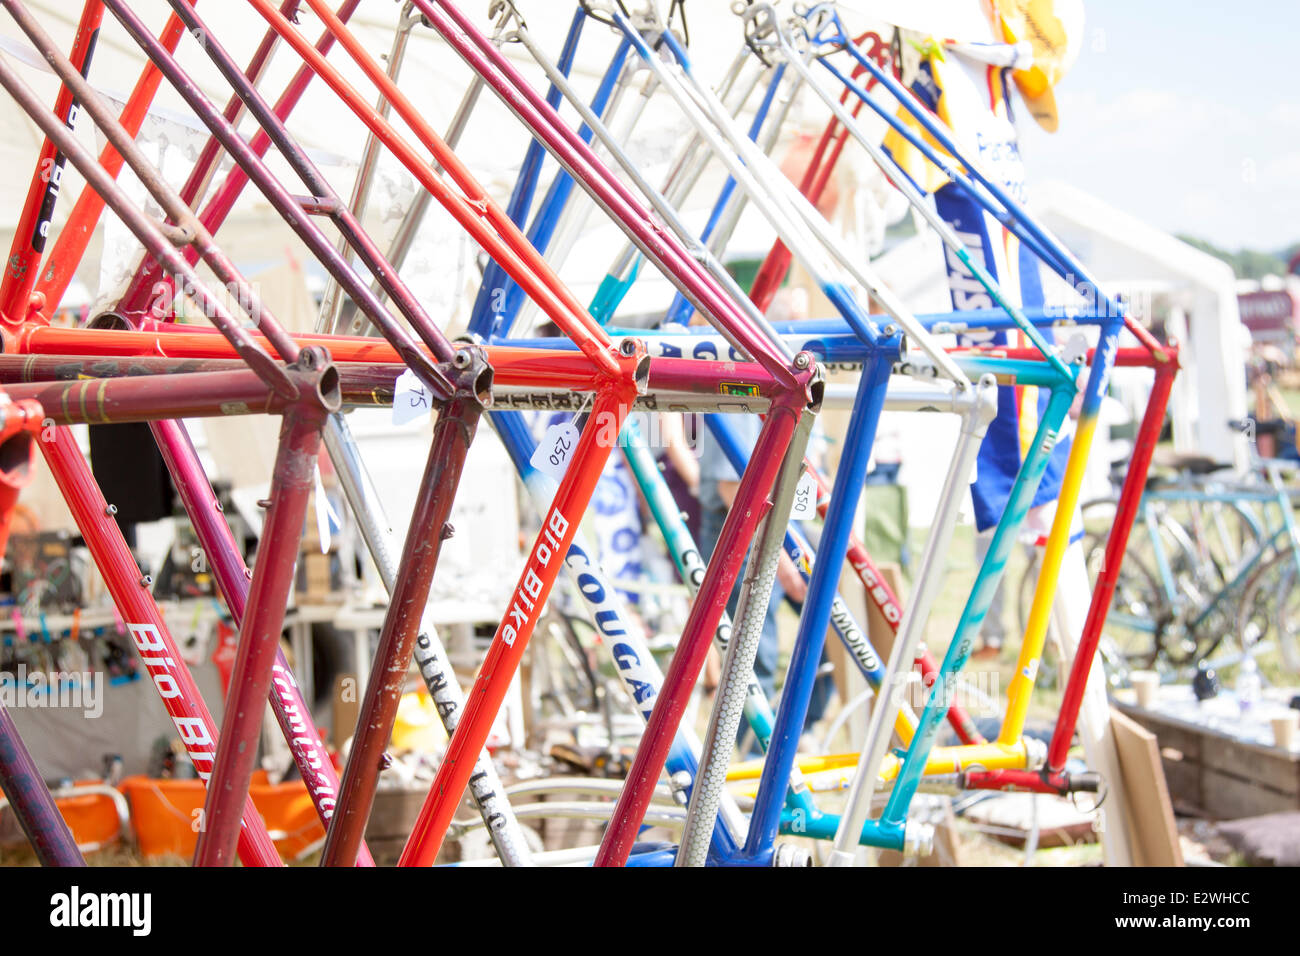 Cycle Frames Stock Photos & Cycle Frames Stock Images - Alamy